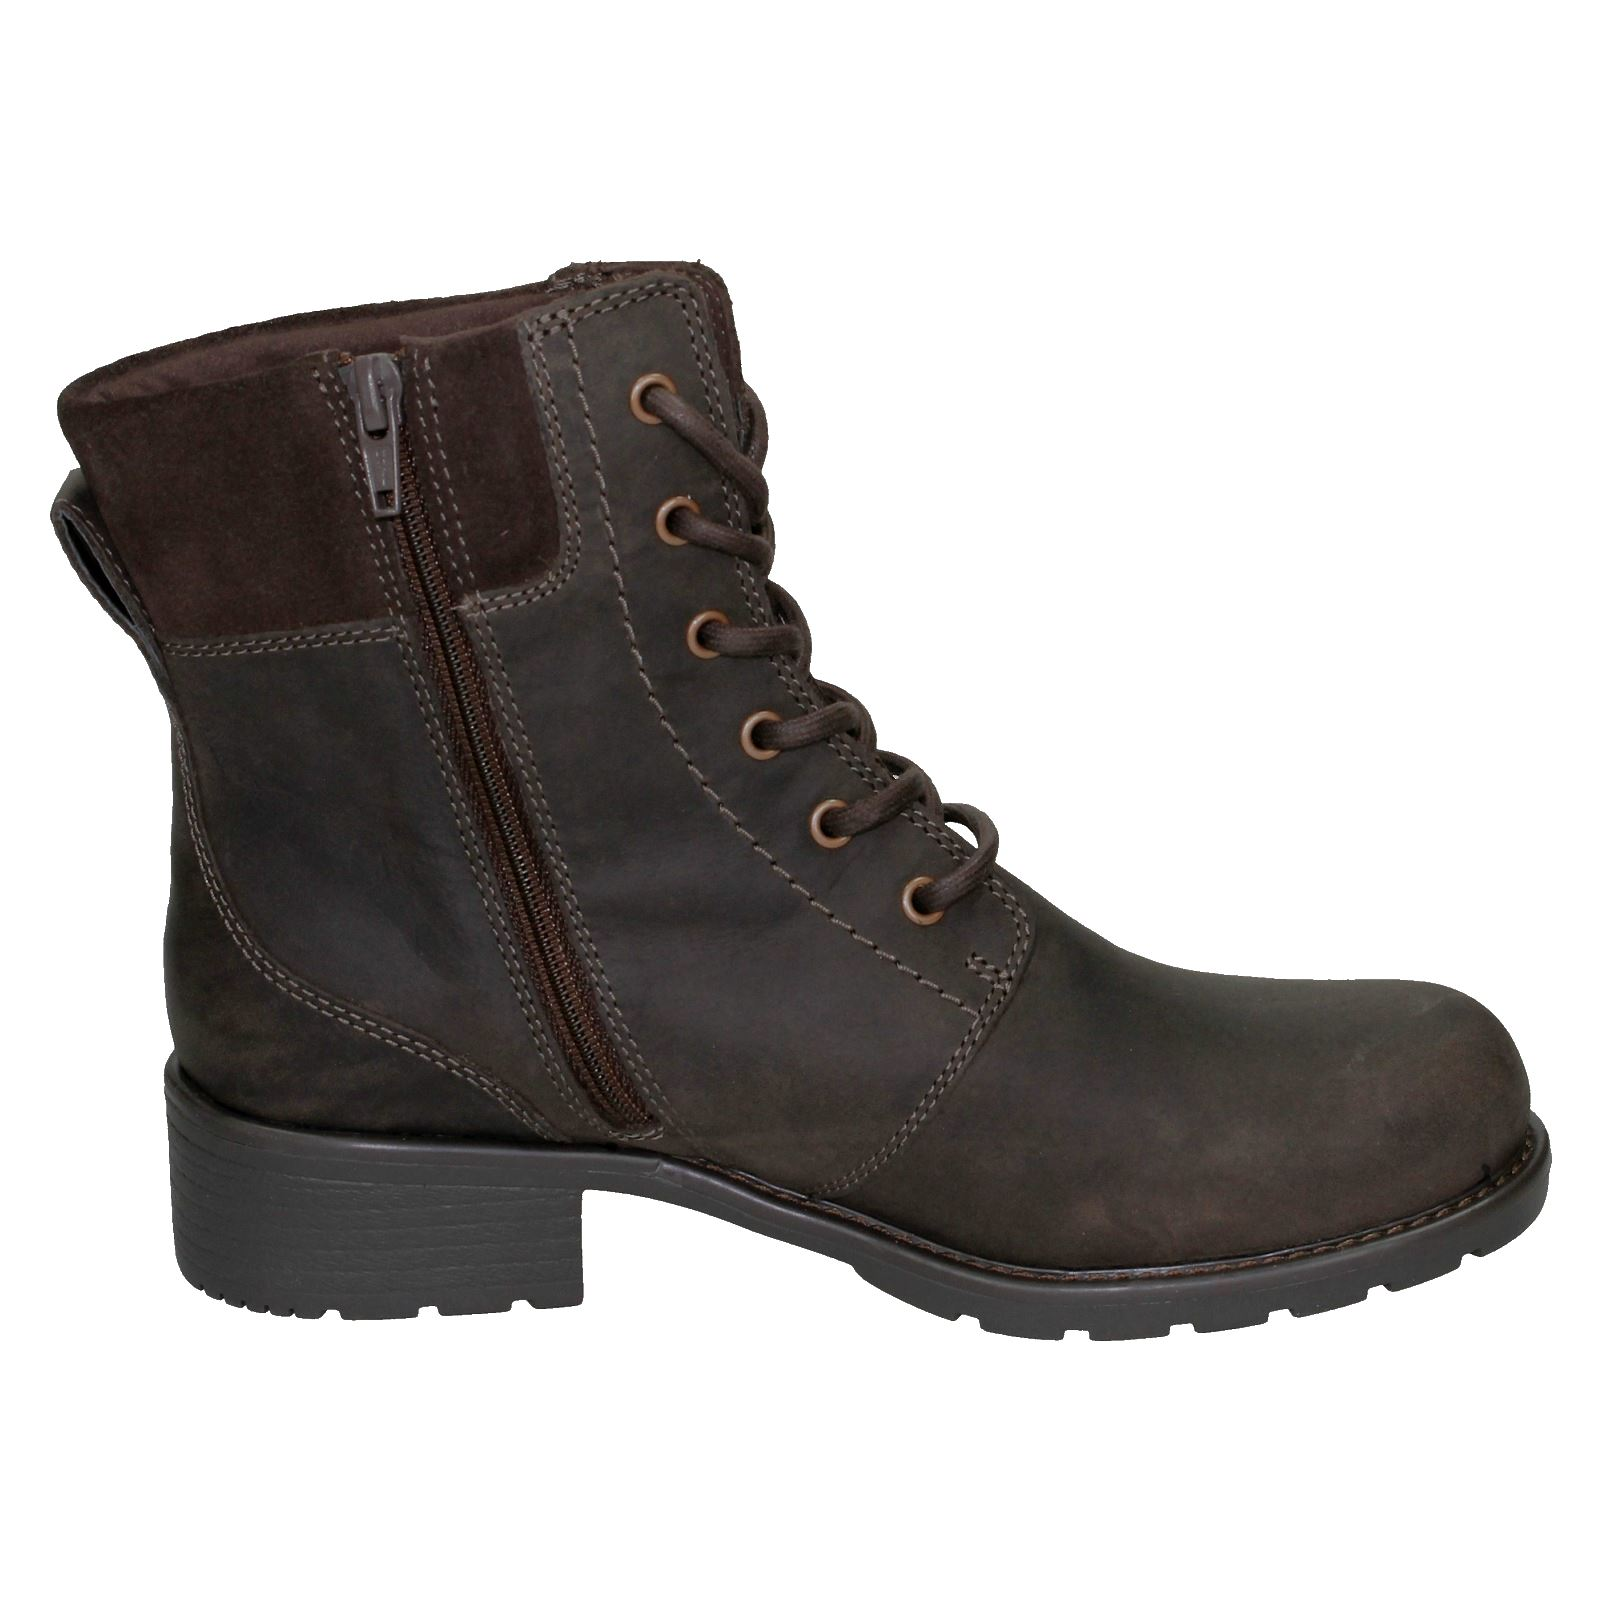 Ladies-Clarks-Casual-Lace-Up-Inside-Zip-Nubuck-Leather-Ankle-Boots-Orinoco-Spice thumbnail 34